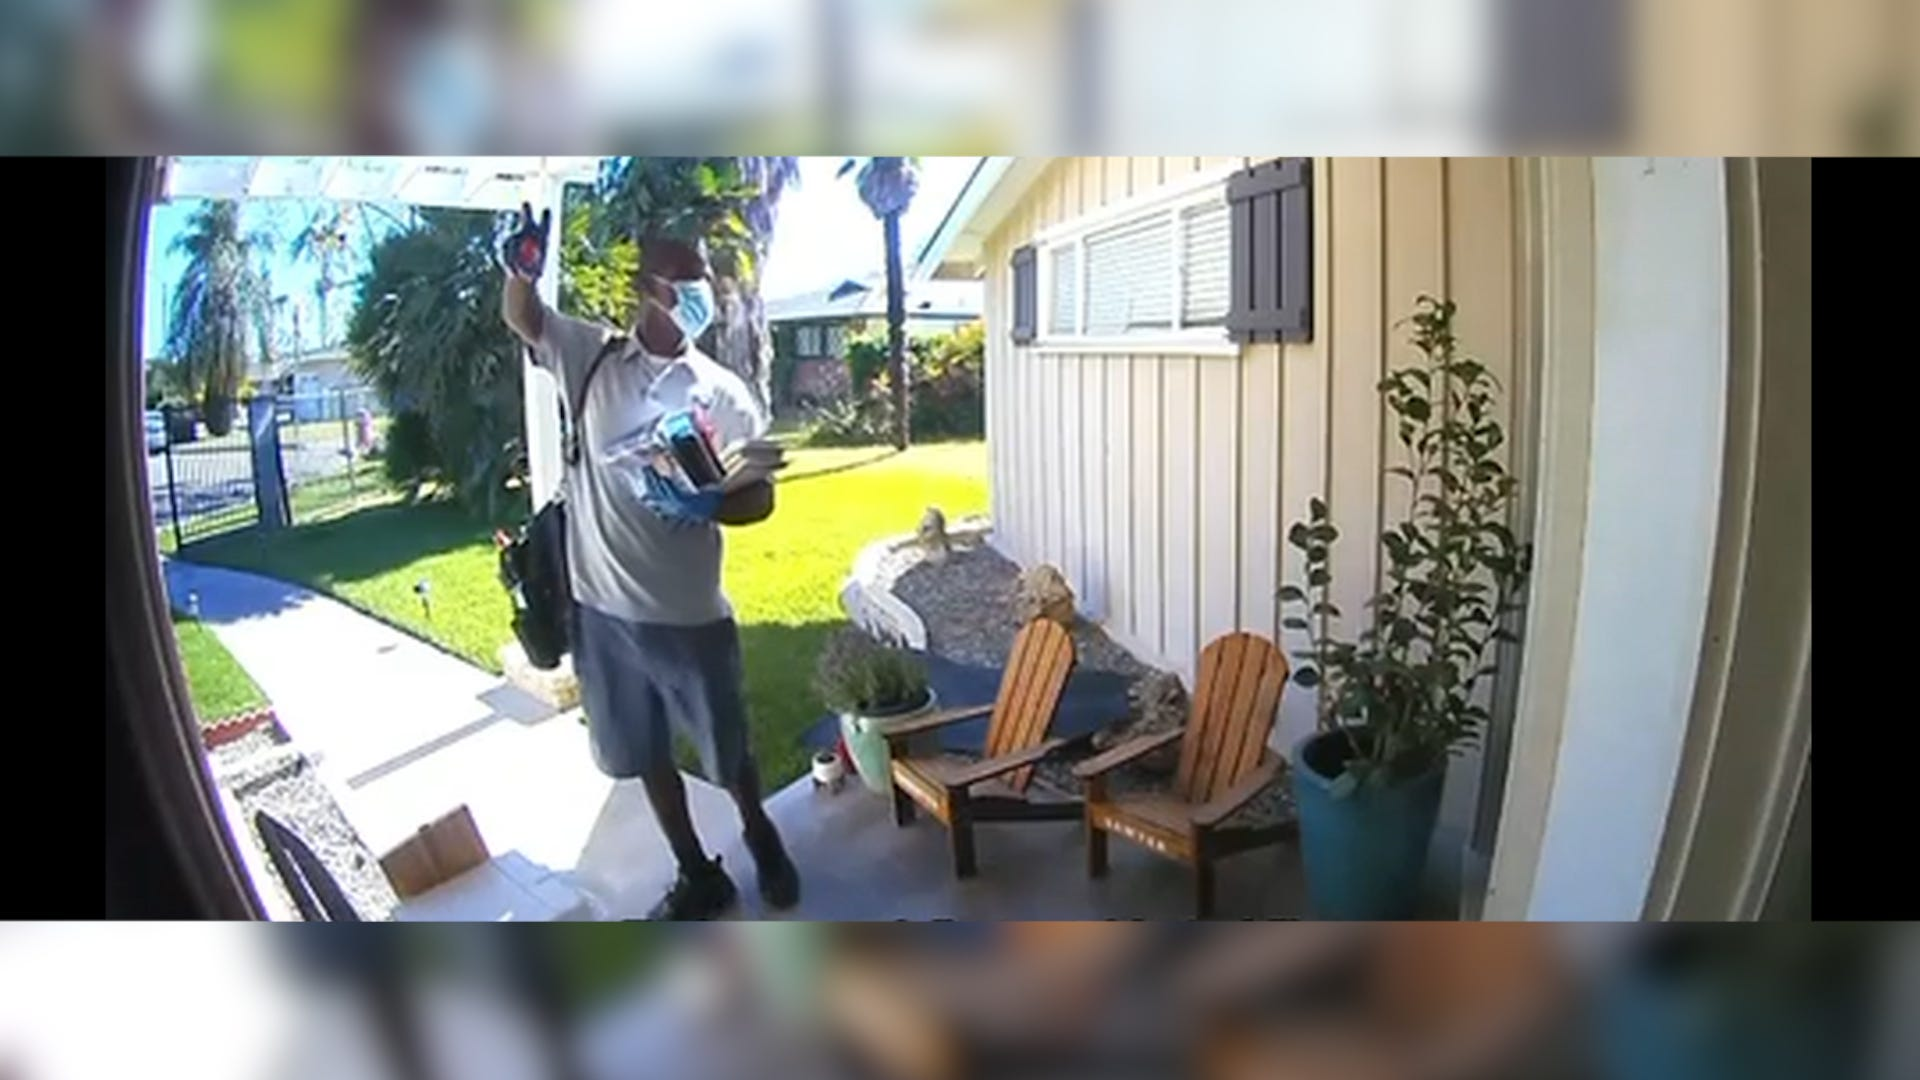 Mailman delivers dance moves to his favorite house